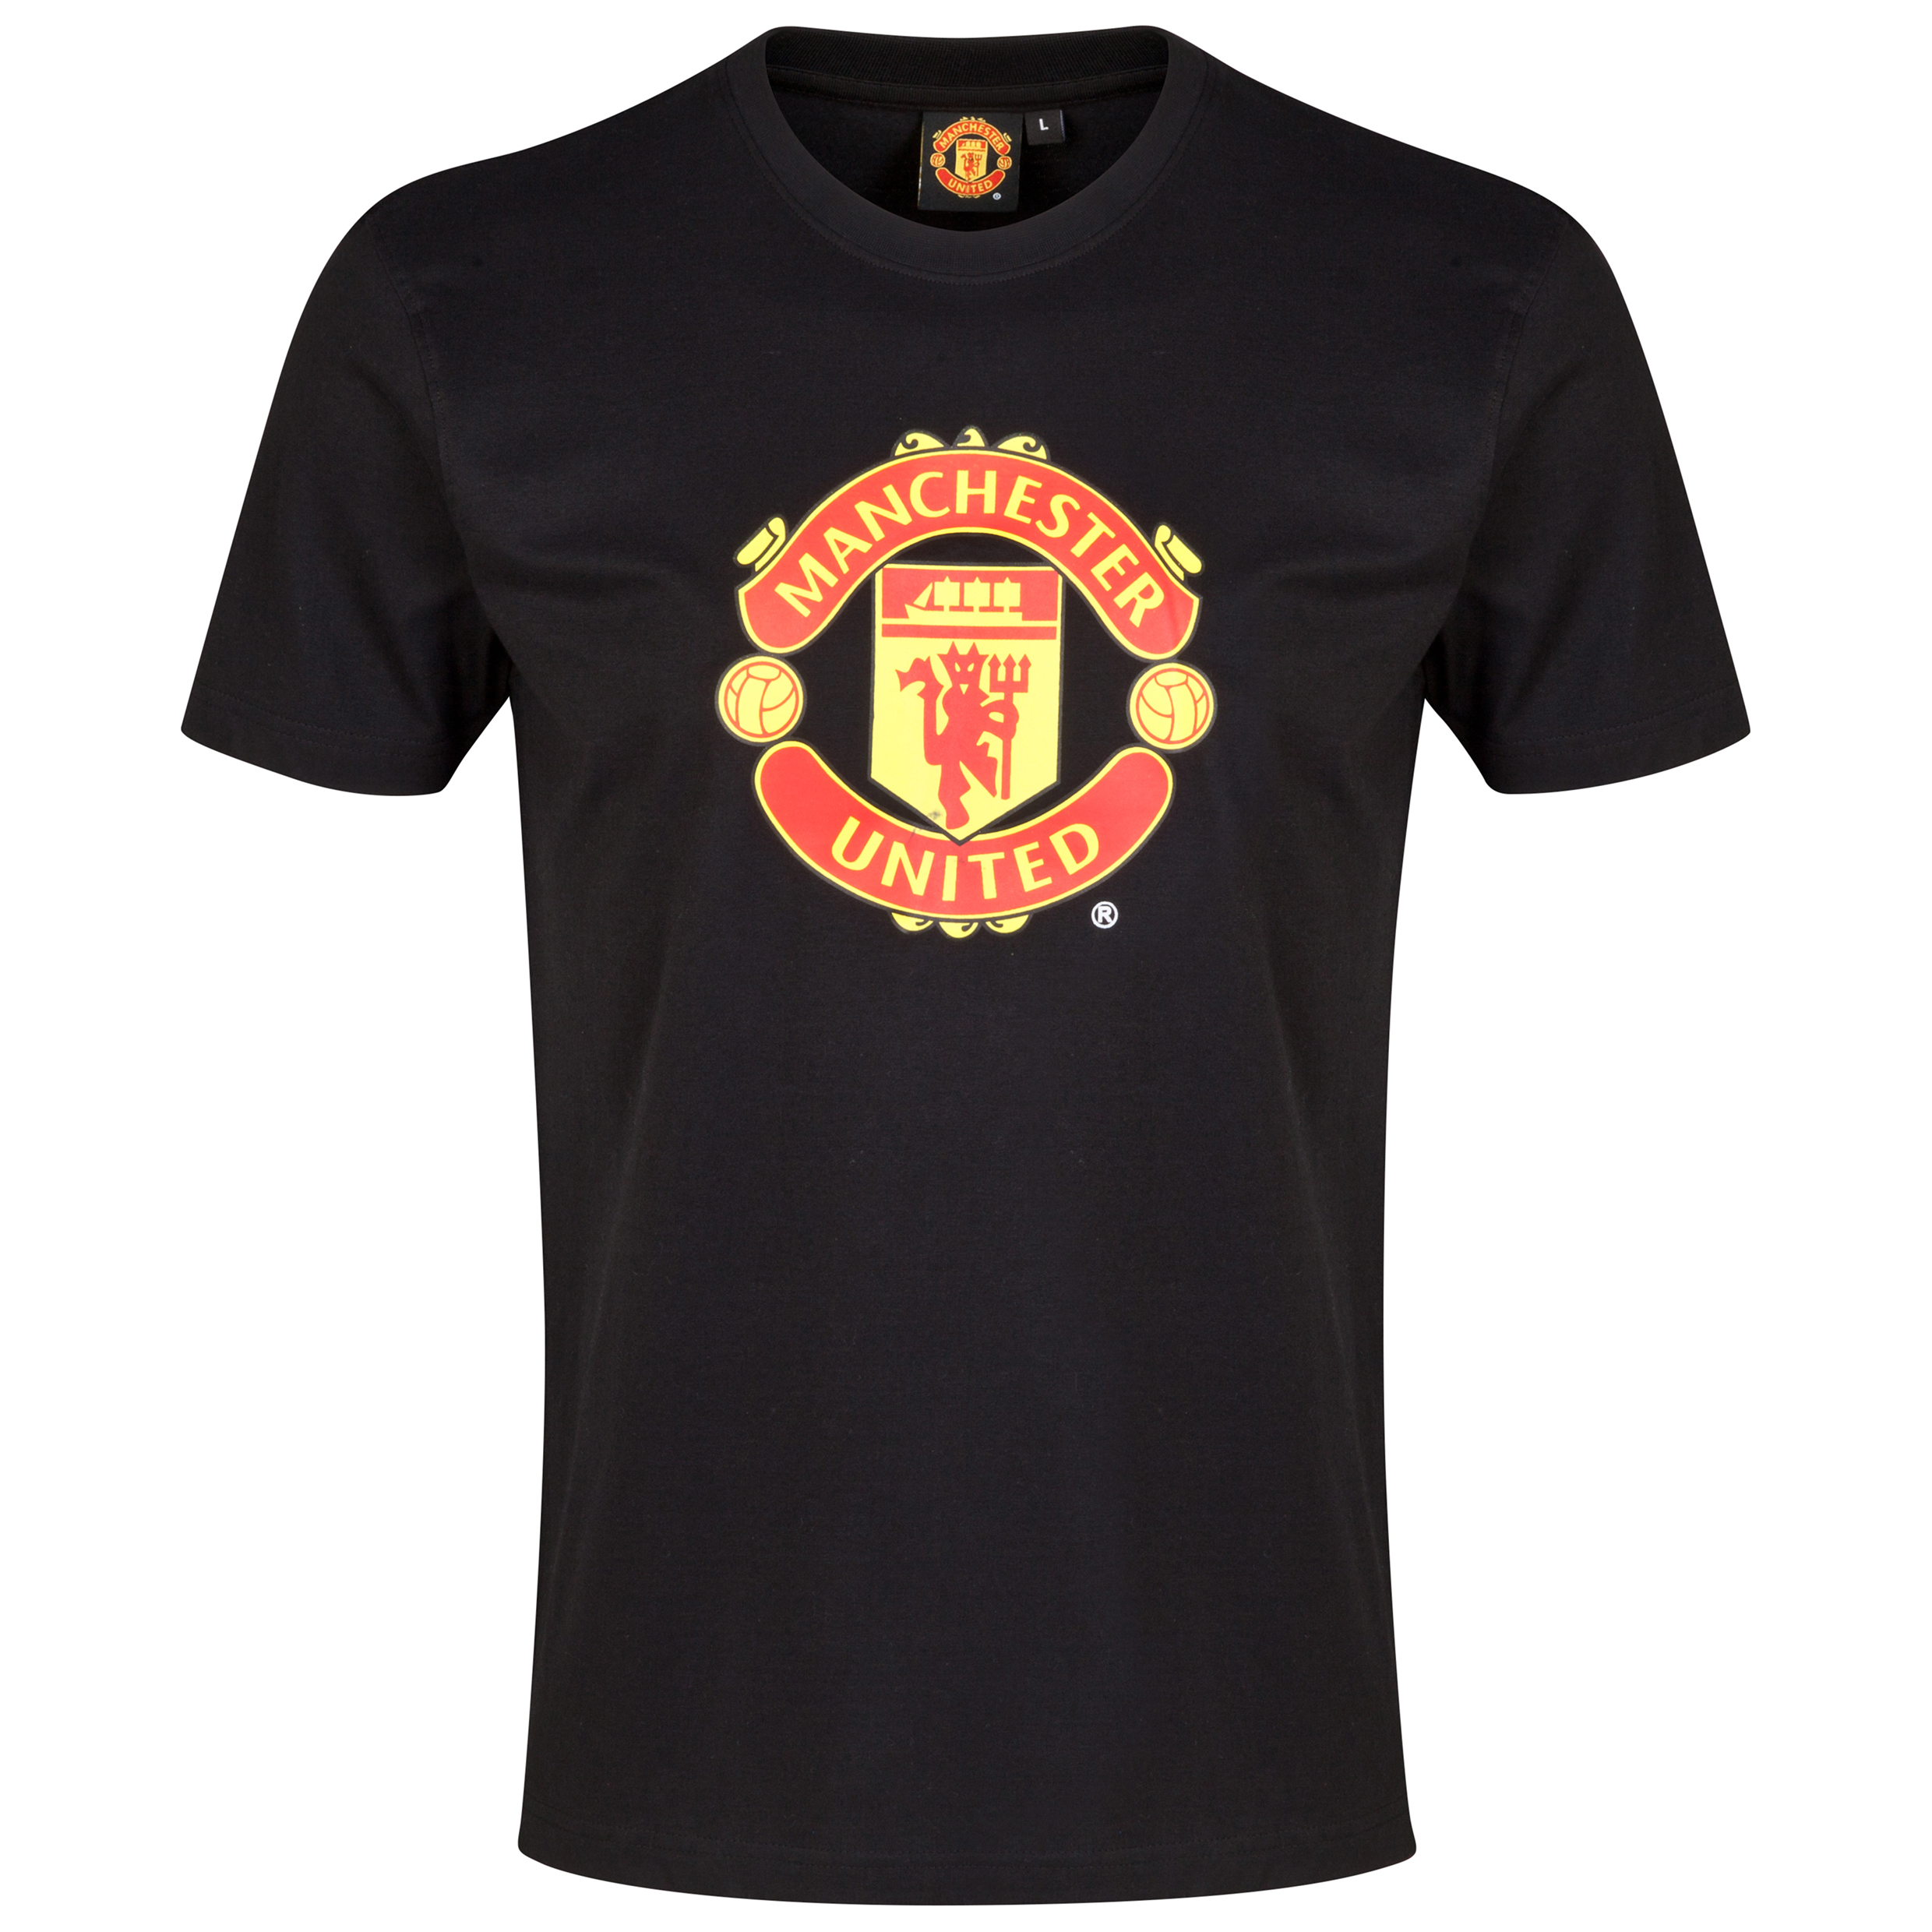 Manchester United Crest T-Shirt - Black - Mens